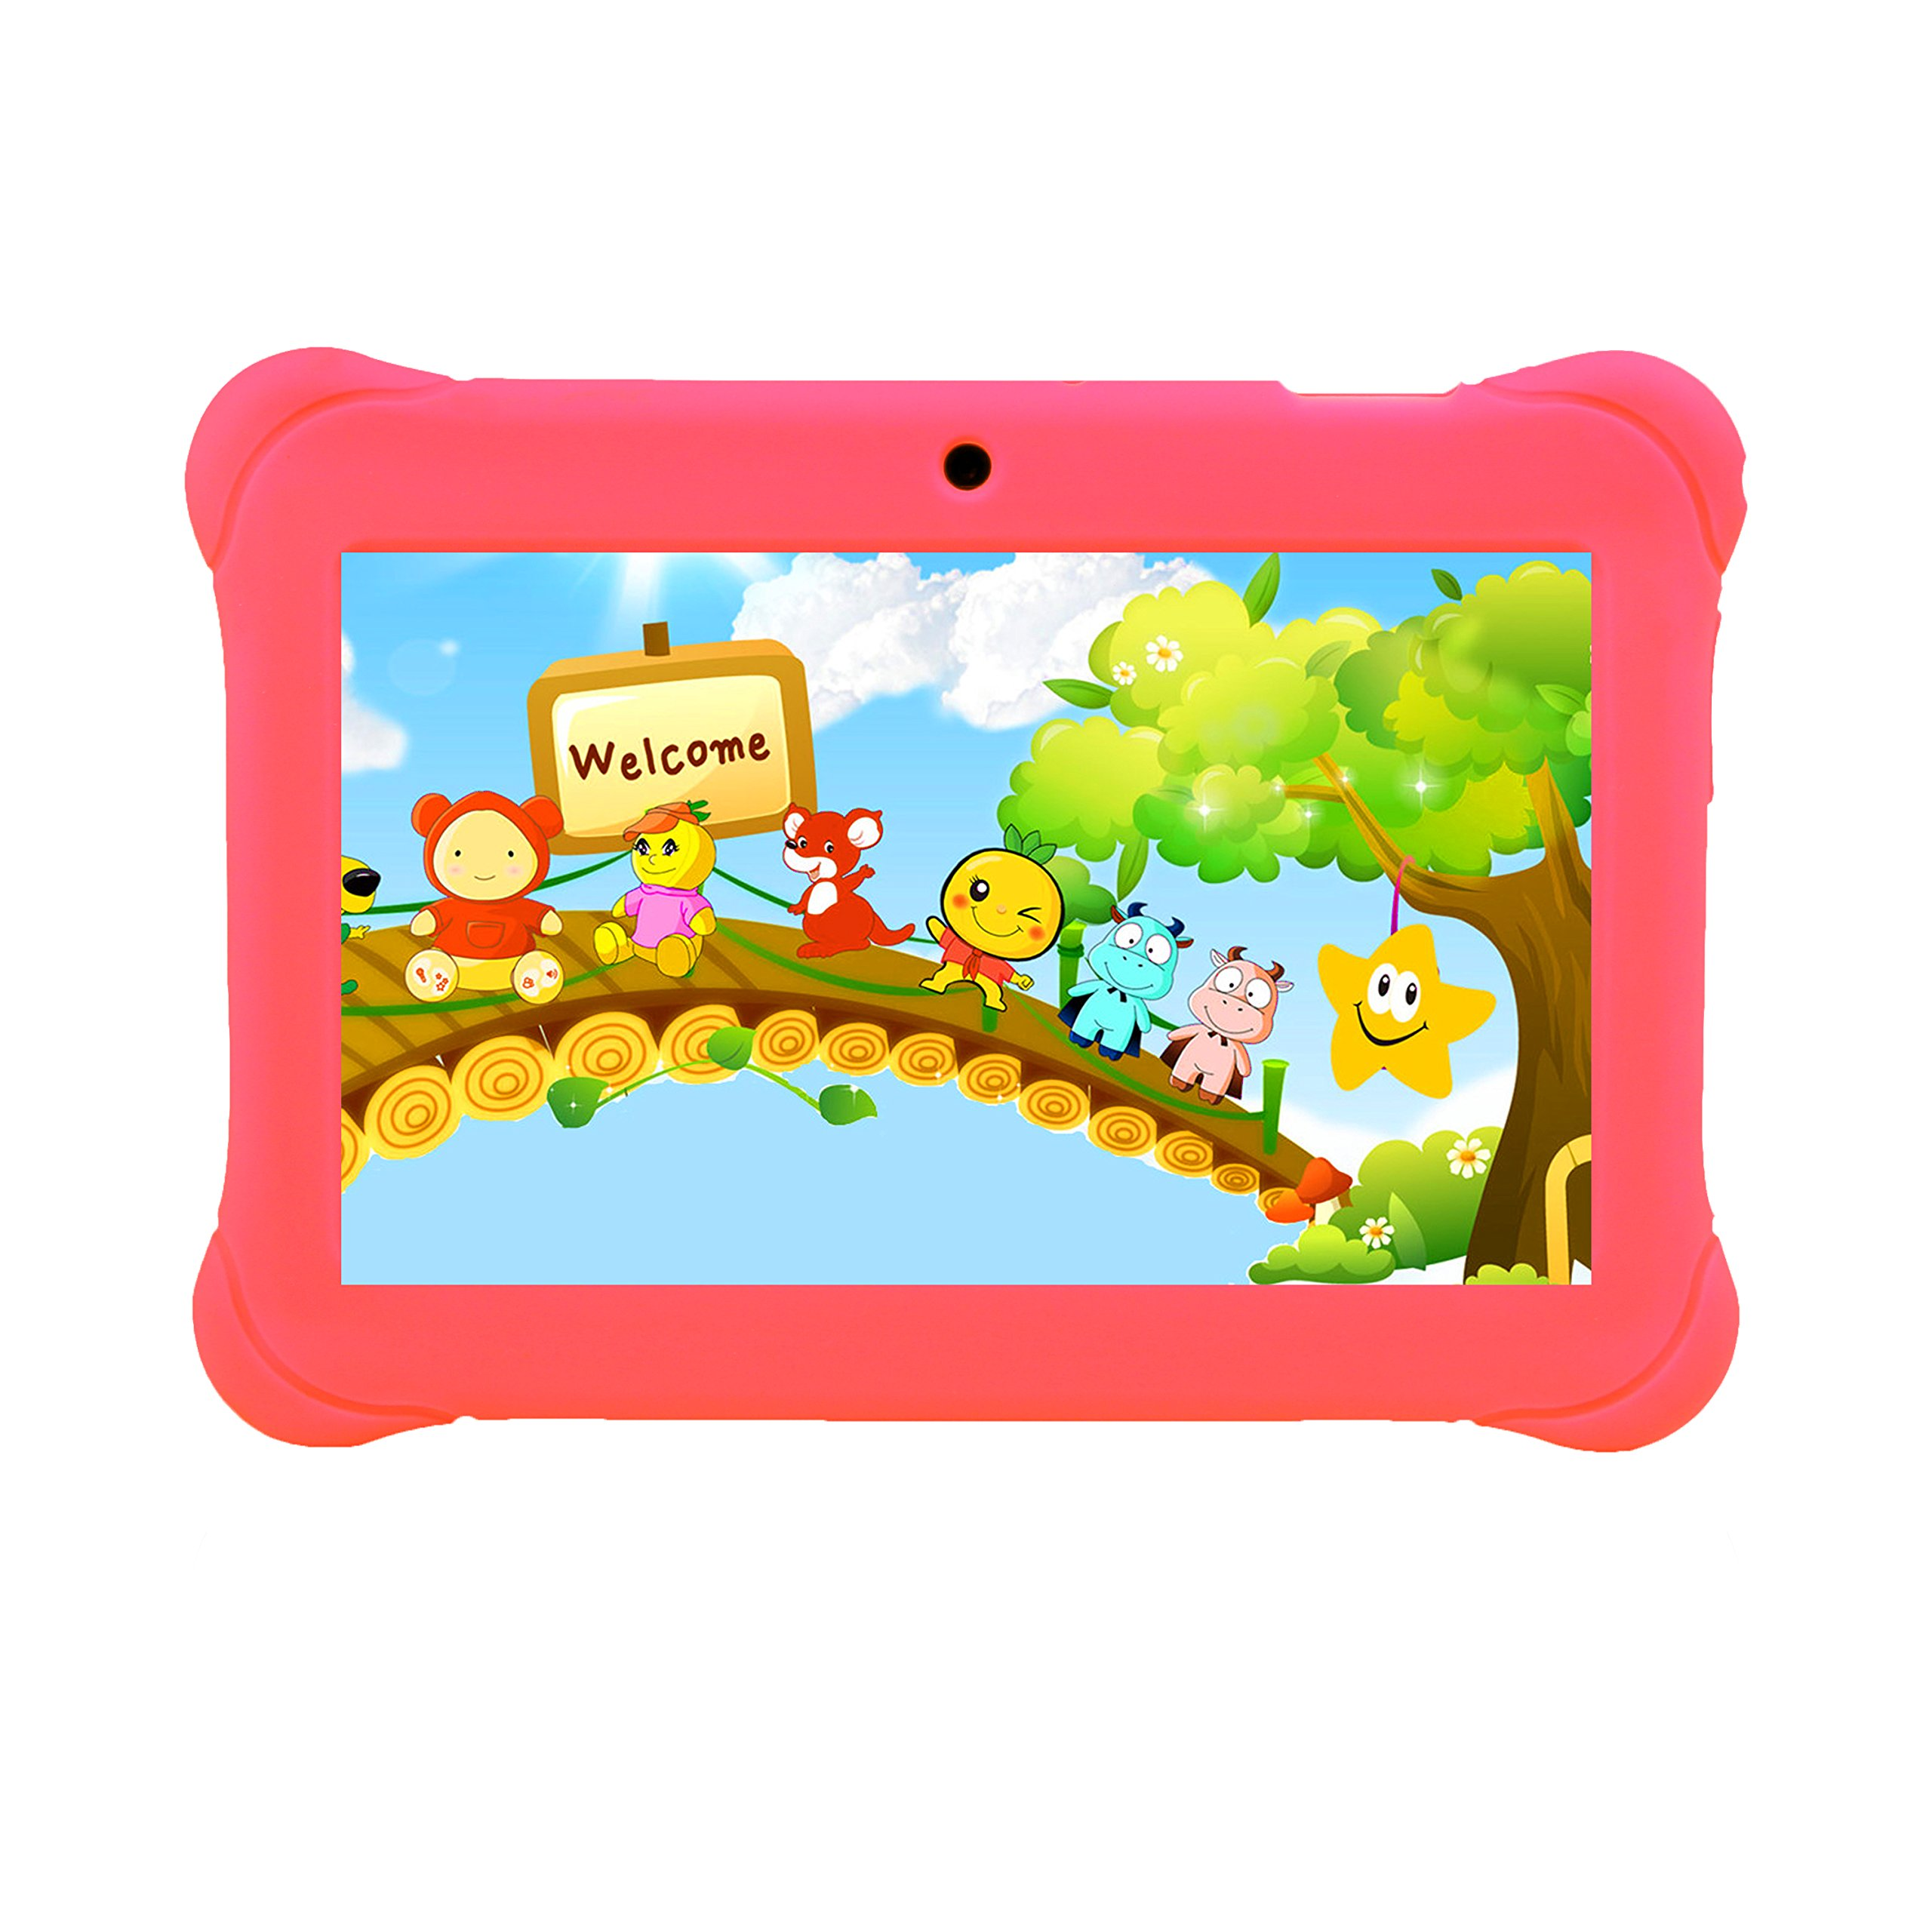 Tagital® 7'' T7K Quad Core Android Kids Tablet, with Wifi and Camera and Games, HD Kids Edition with Kid Mode Pre-Installed Pink